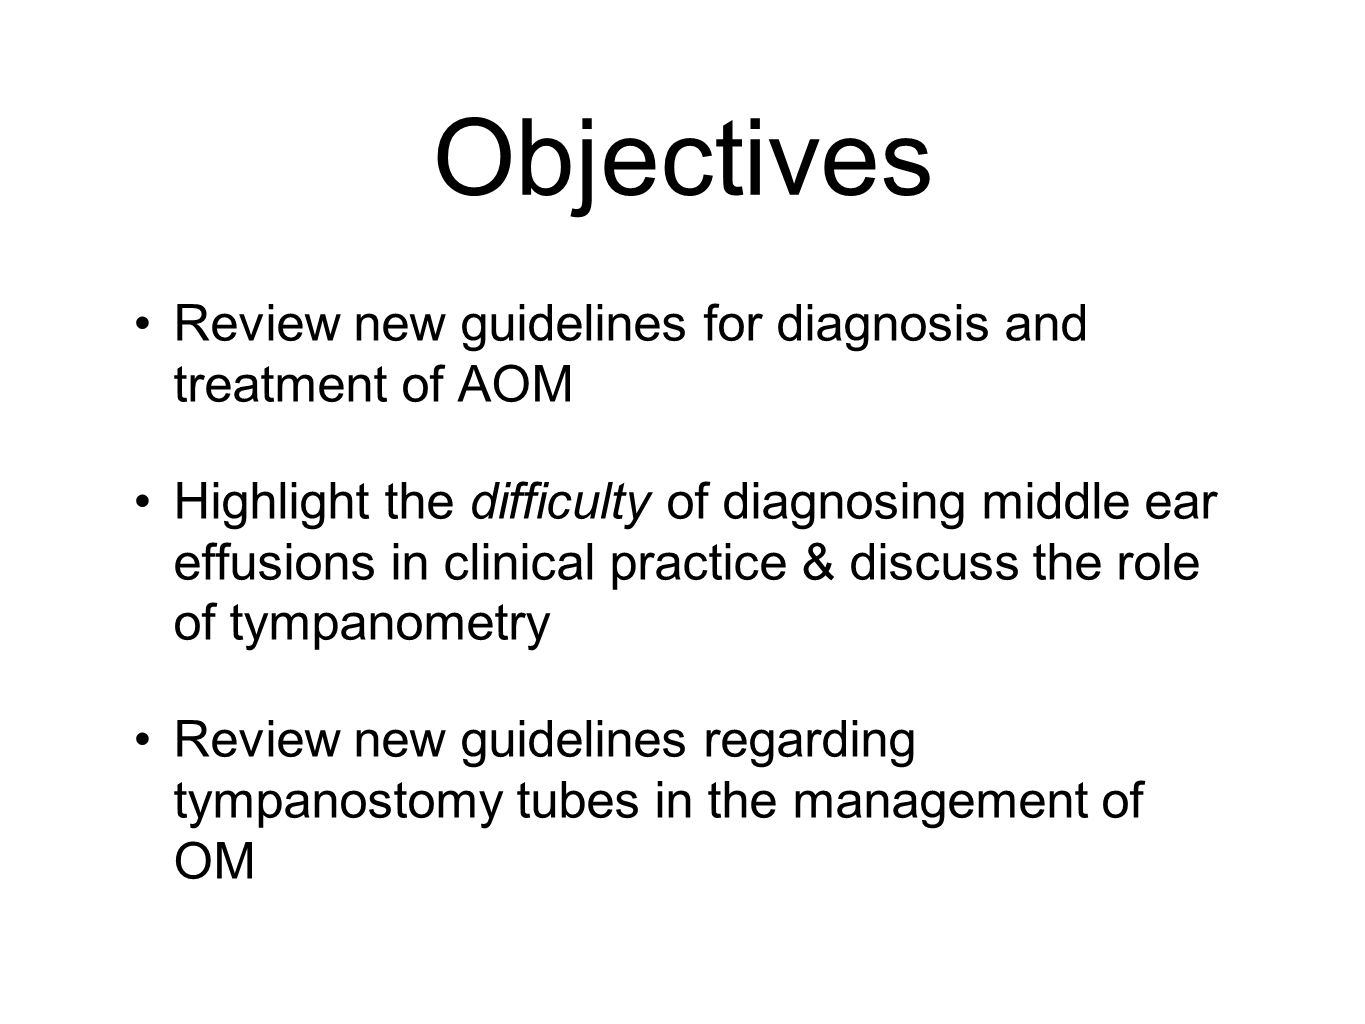 Objectives Review new guidelines for diagnosis and treatment of AOM